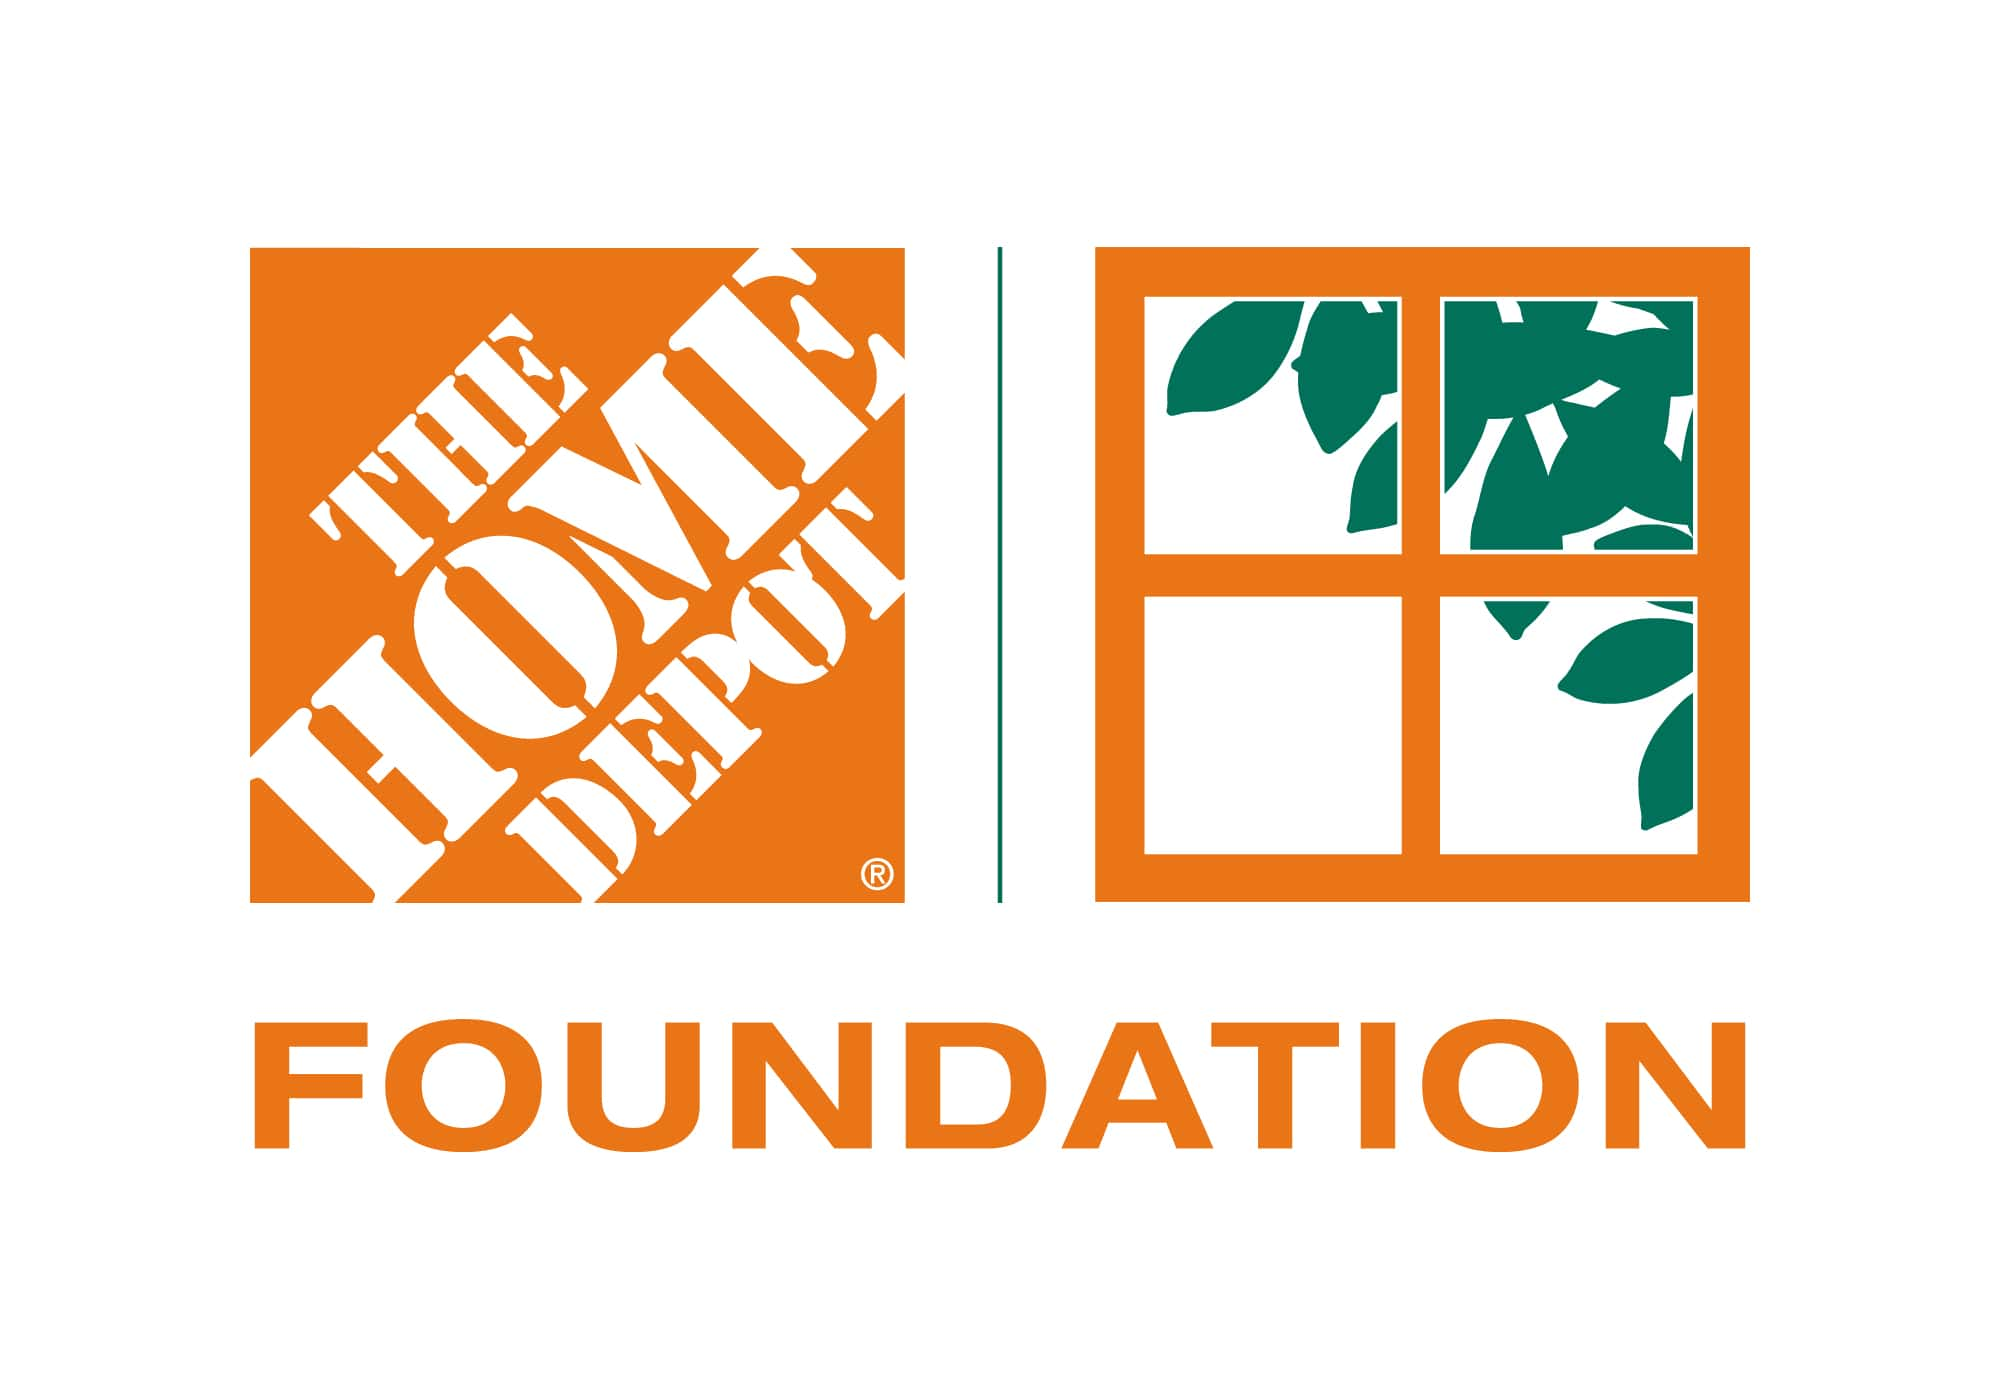 Sponsored by The Home Depot Foundation